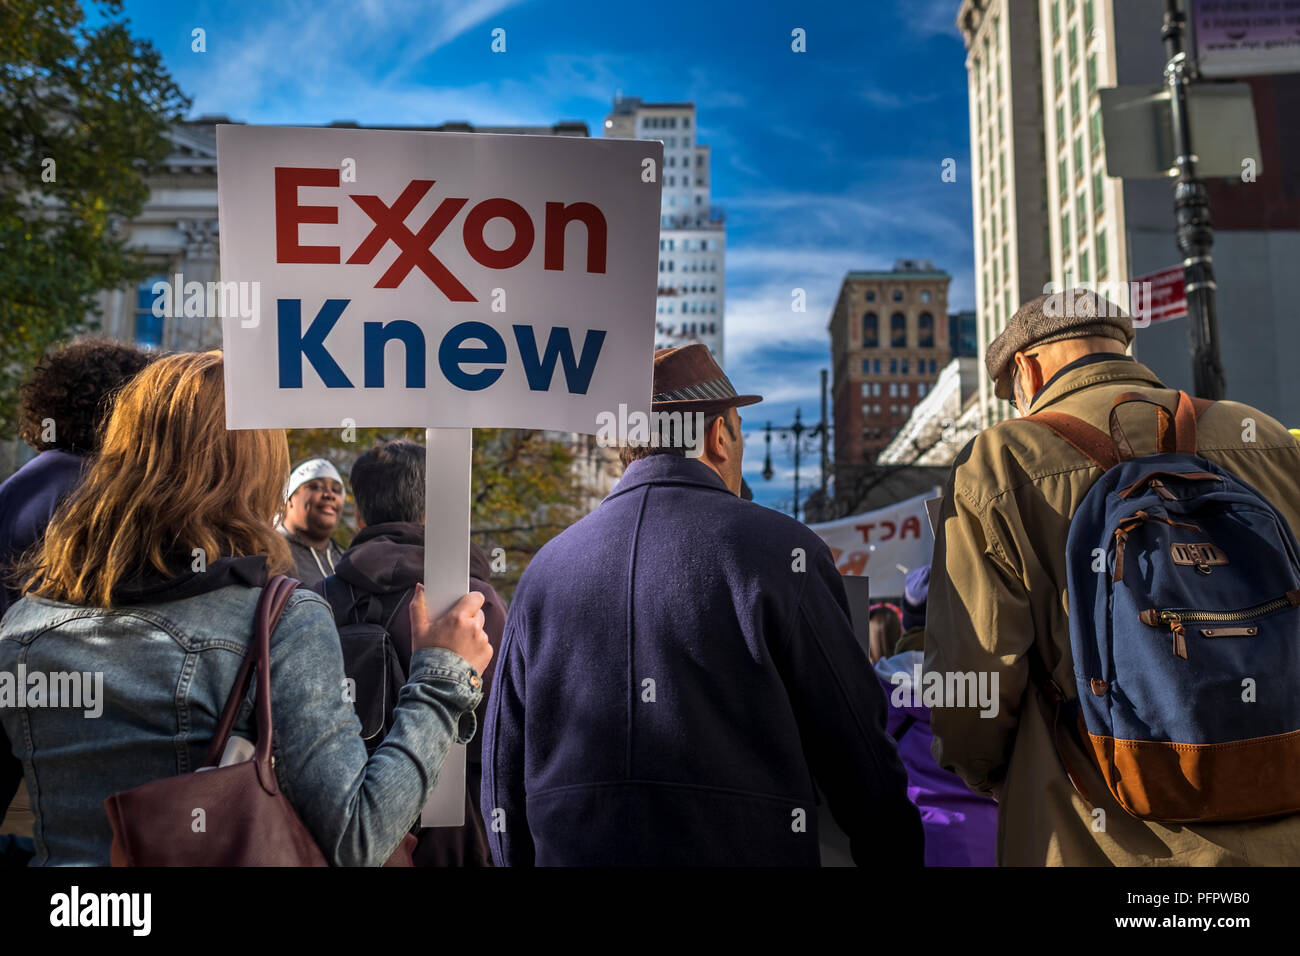 New York City, USA.  29th November, 2015:  A woman holds up a sign during the global climate change march in New York City, USA. Stock Photo